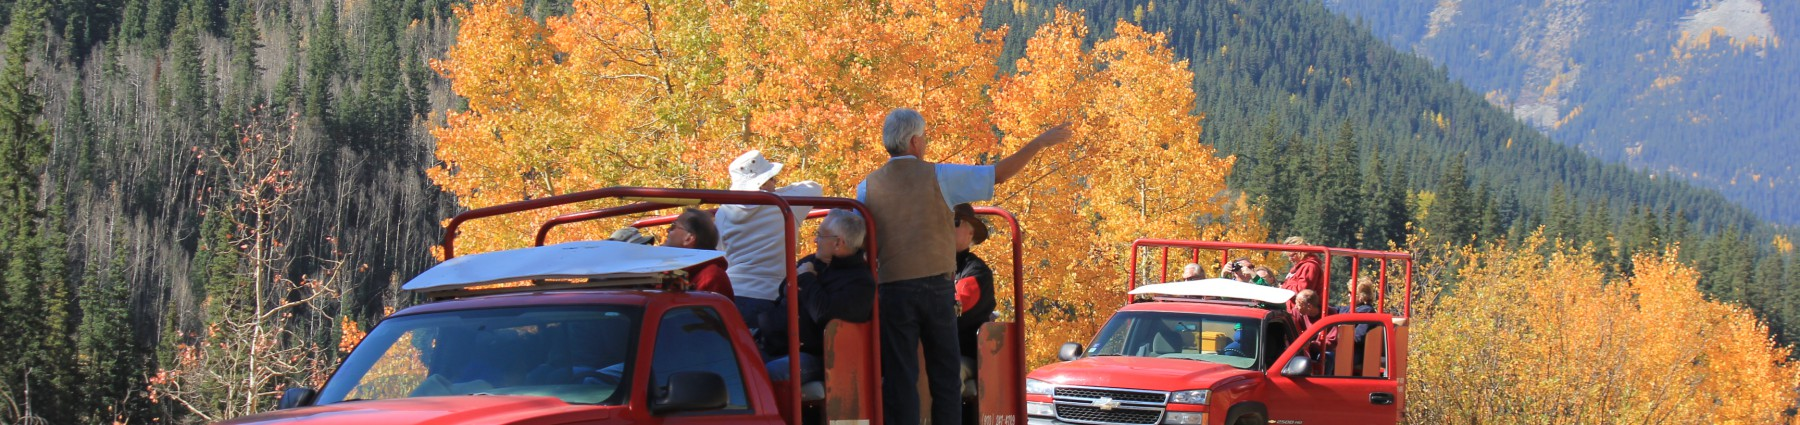 Trucks, Guides & Fall Colors